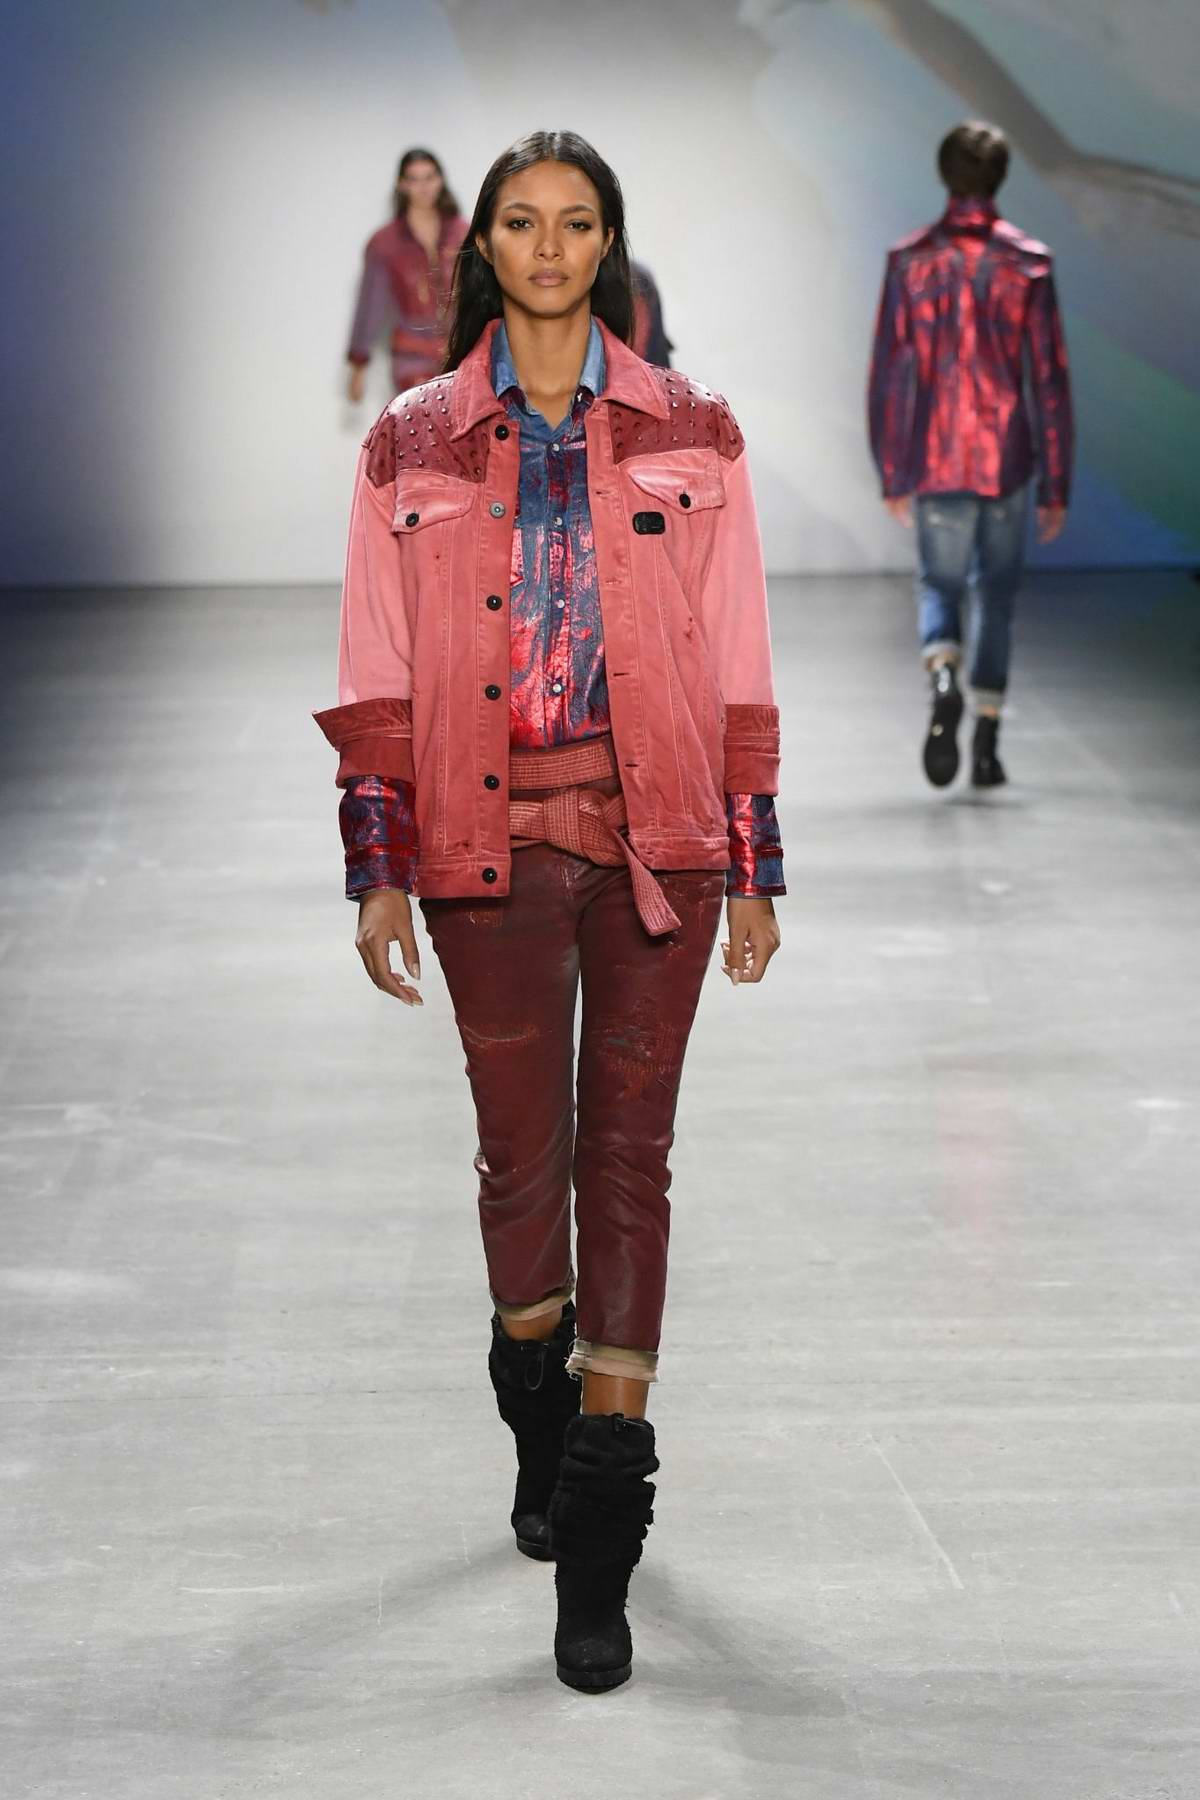 Lais Ribeiro walks the runway at the John John Fashion Show during New York Fashion Week in New York City